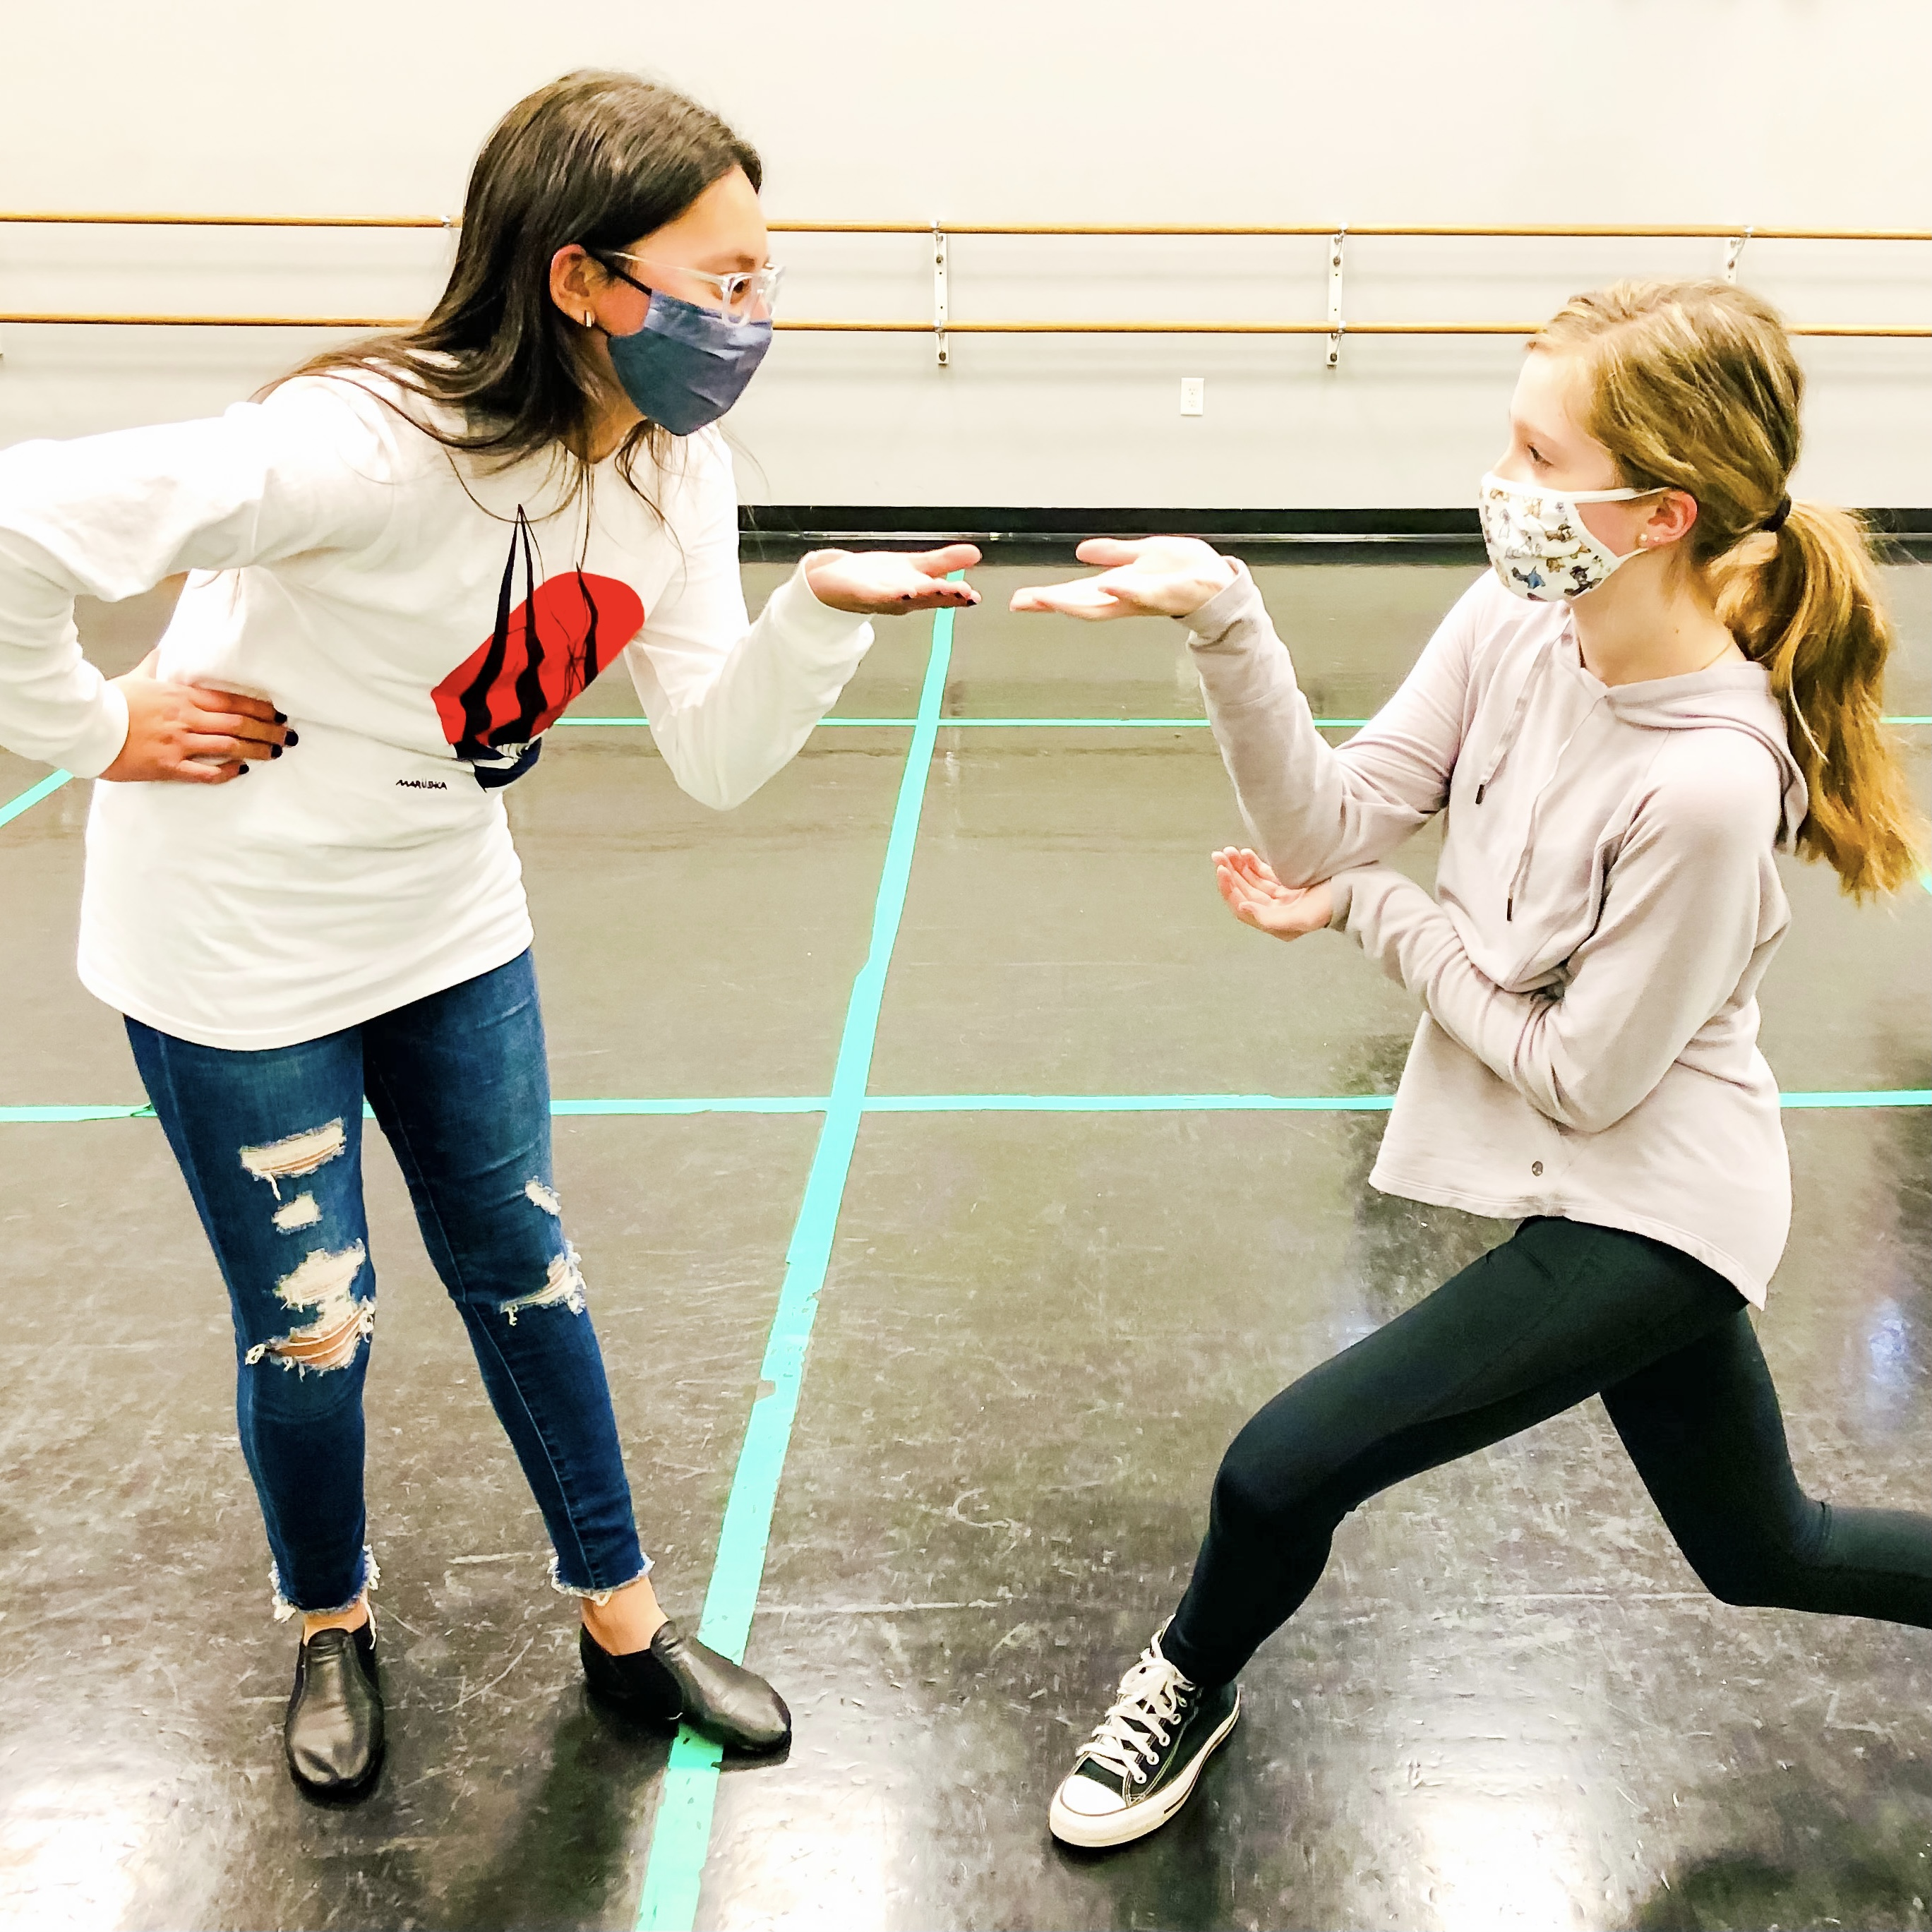 Two students stand facing each other in the middle of musical theatre practice